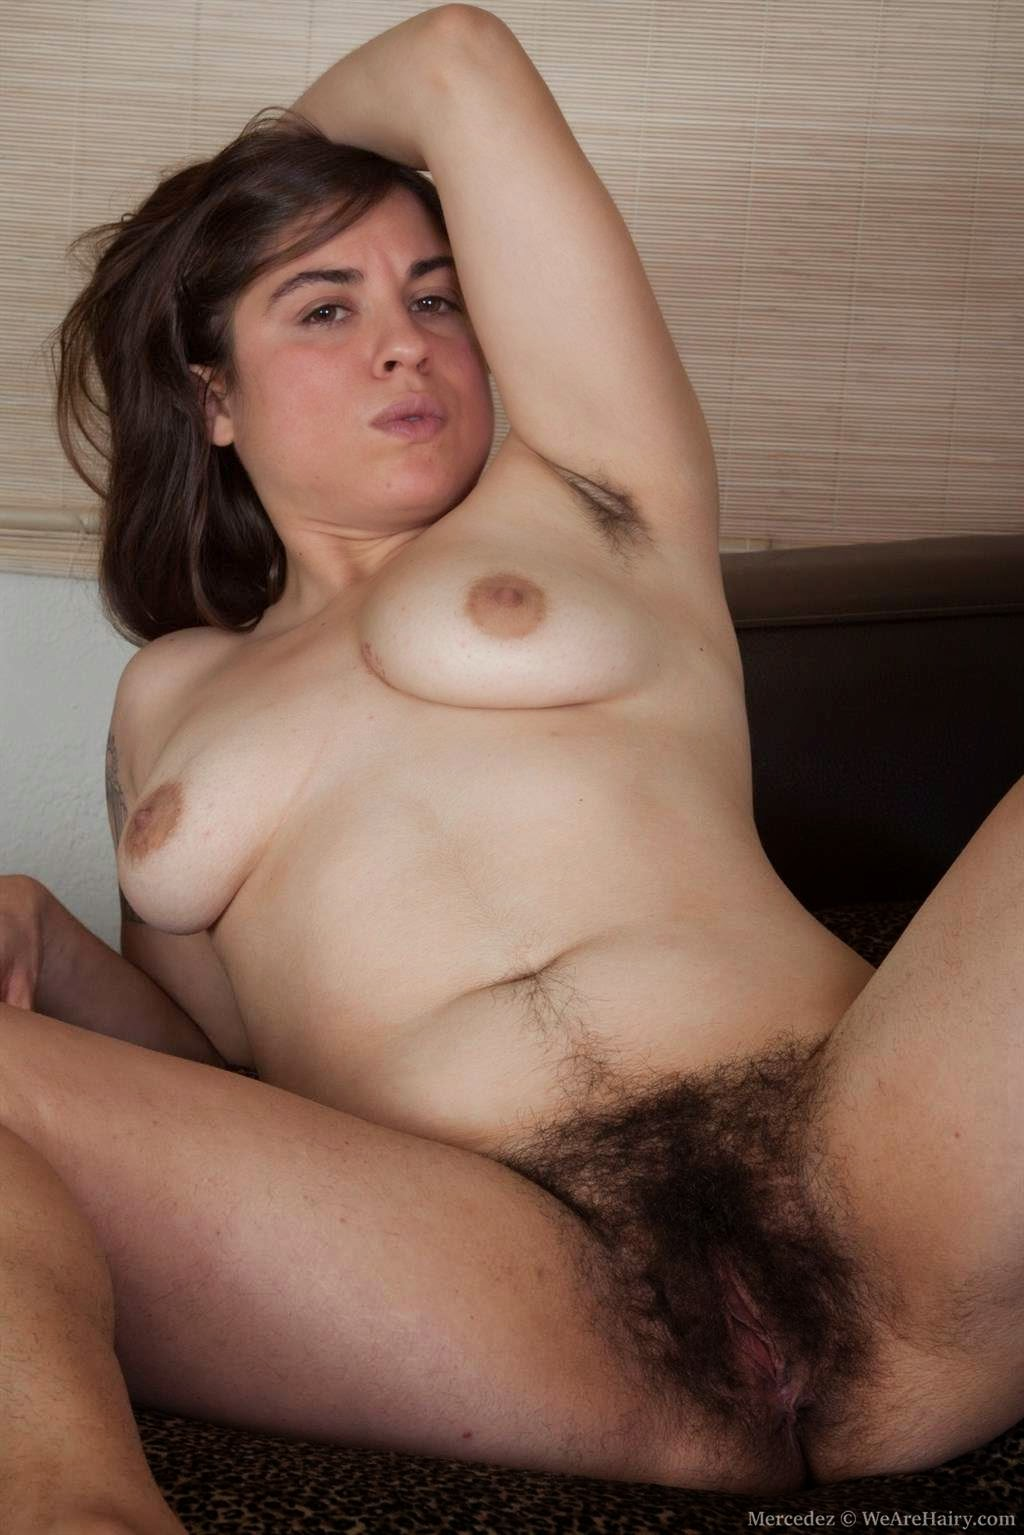 hairy ginger nude girls